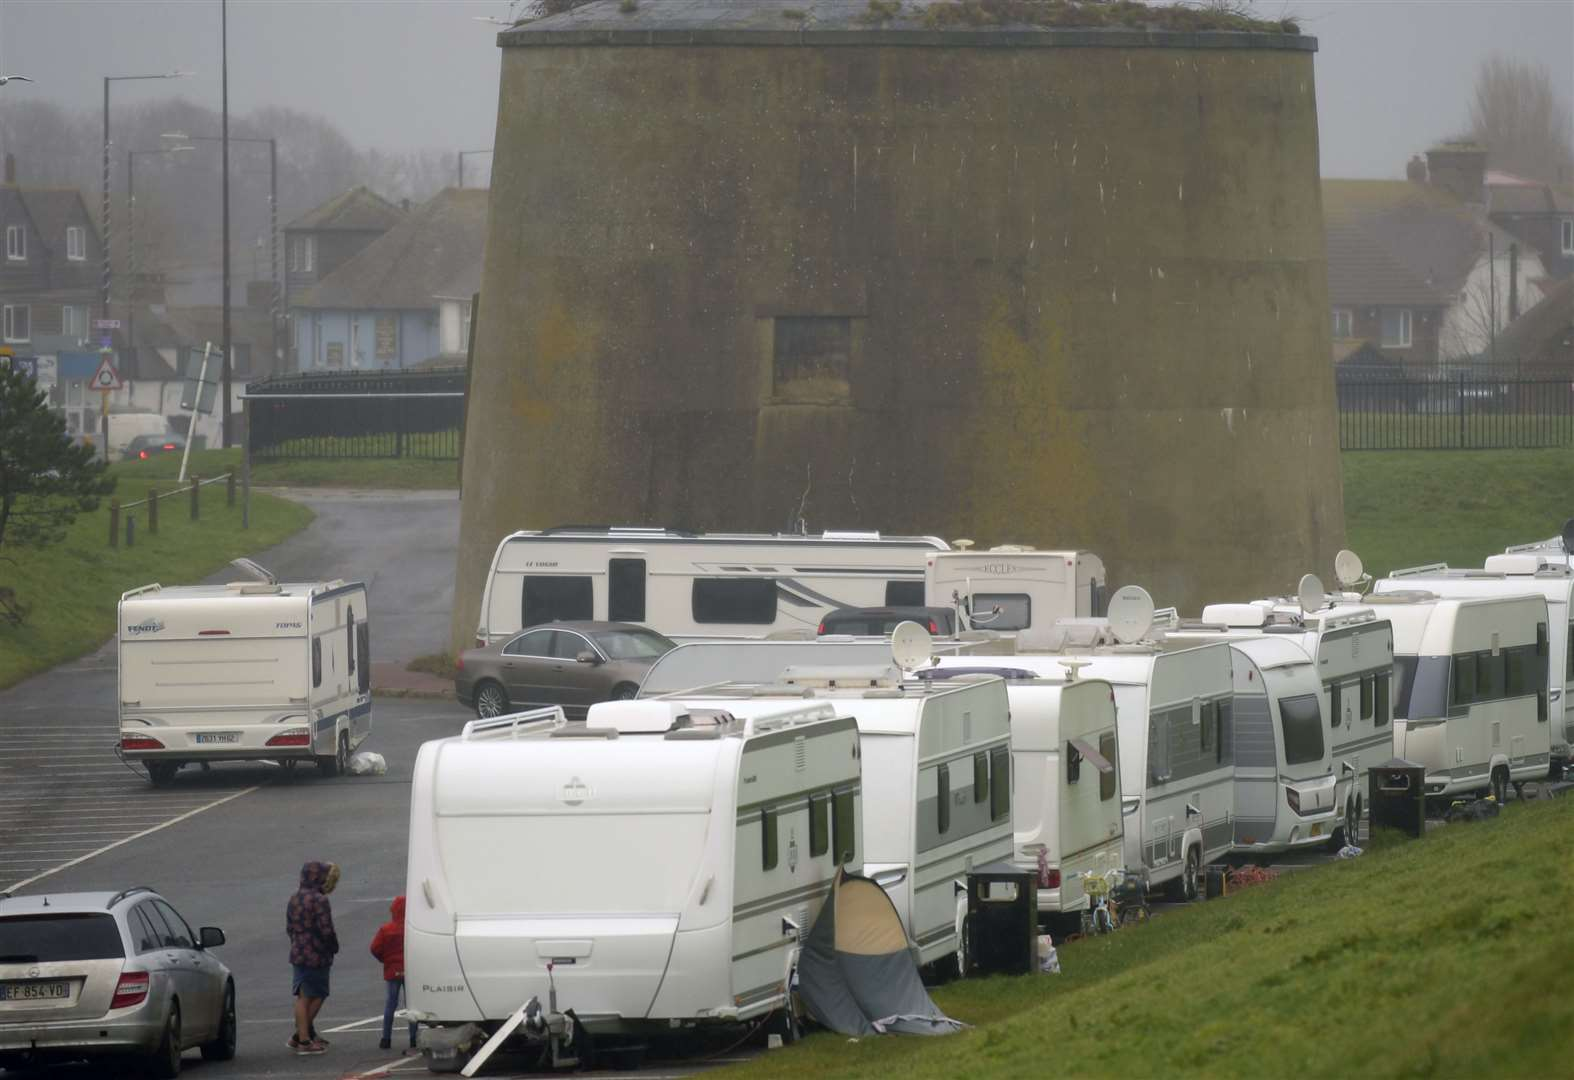 Council plans 'legal steps' to move camp